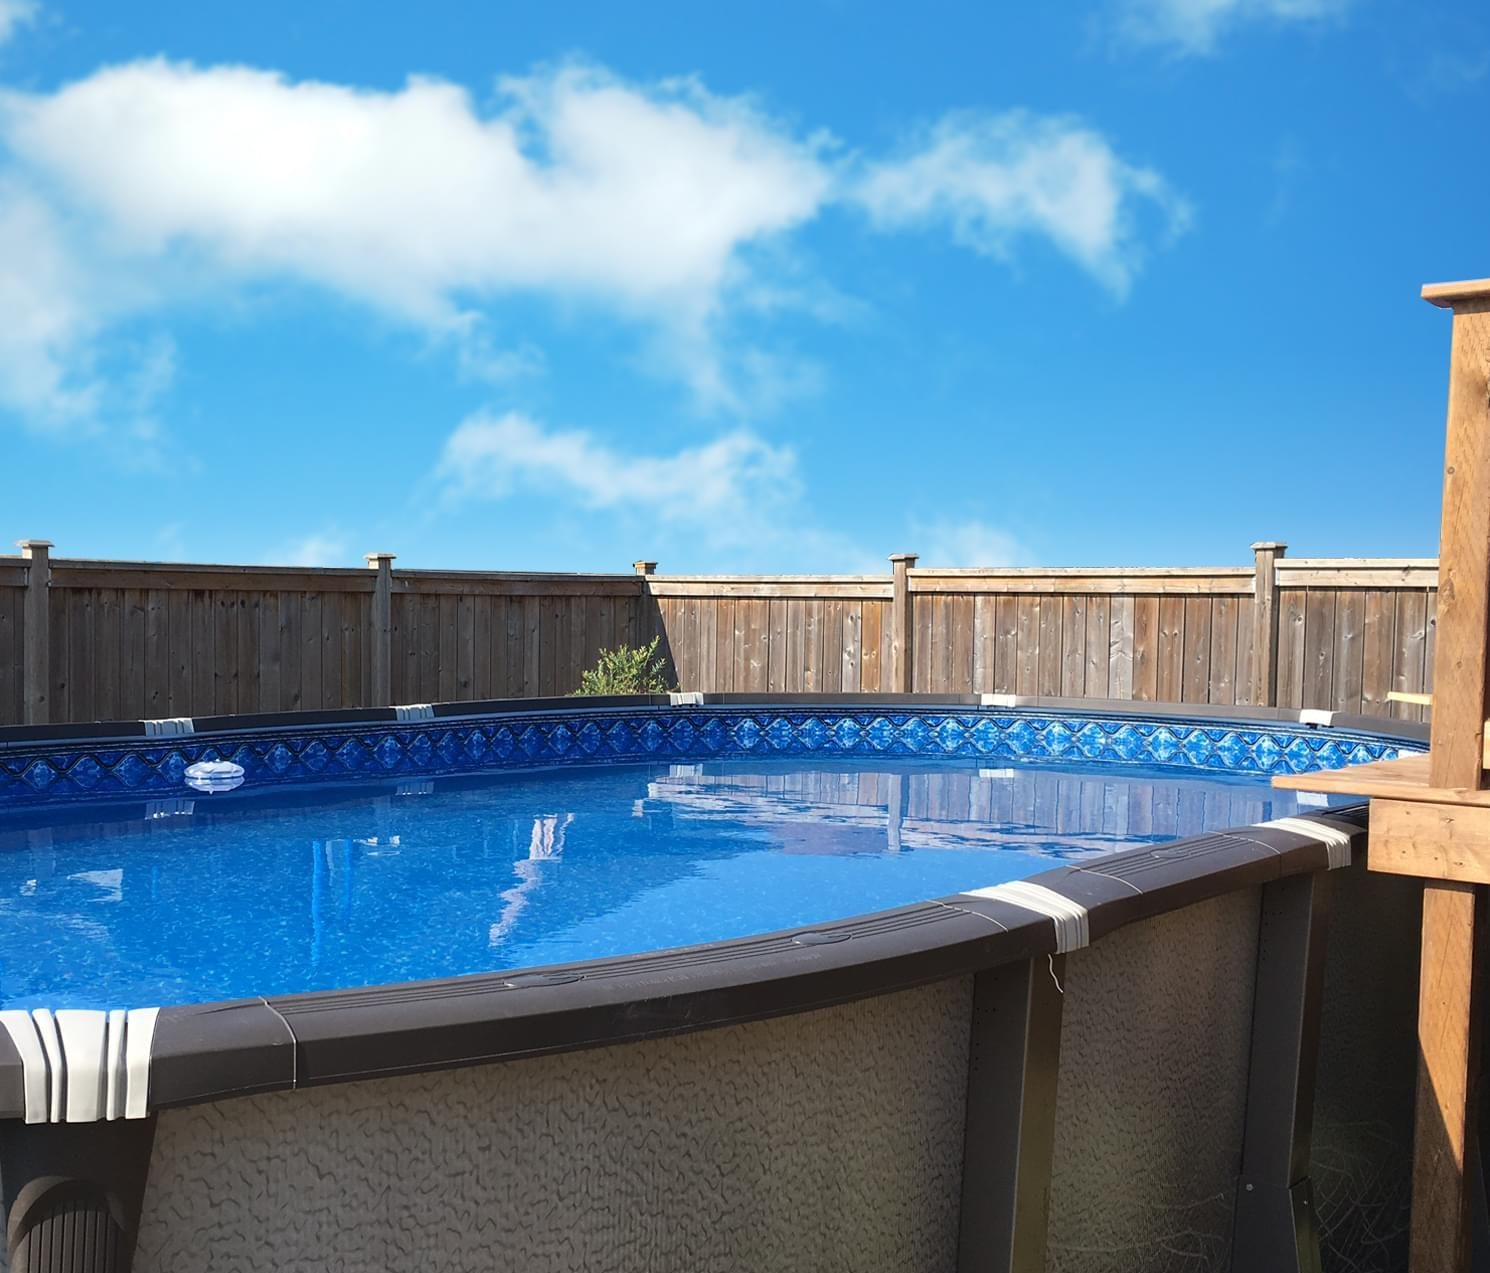 How To Install An Intex Above Ground Pool